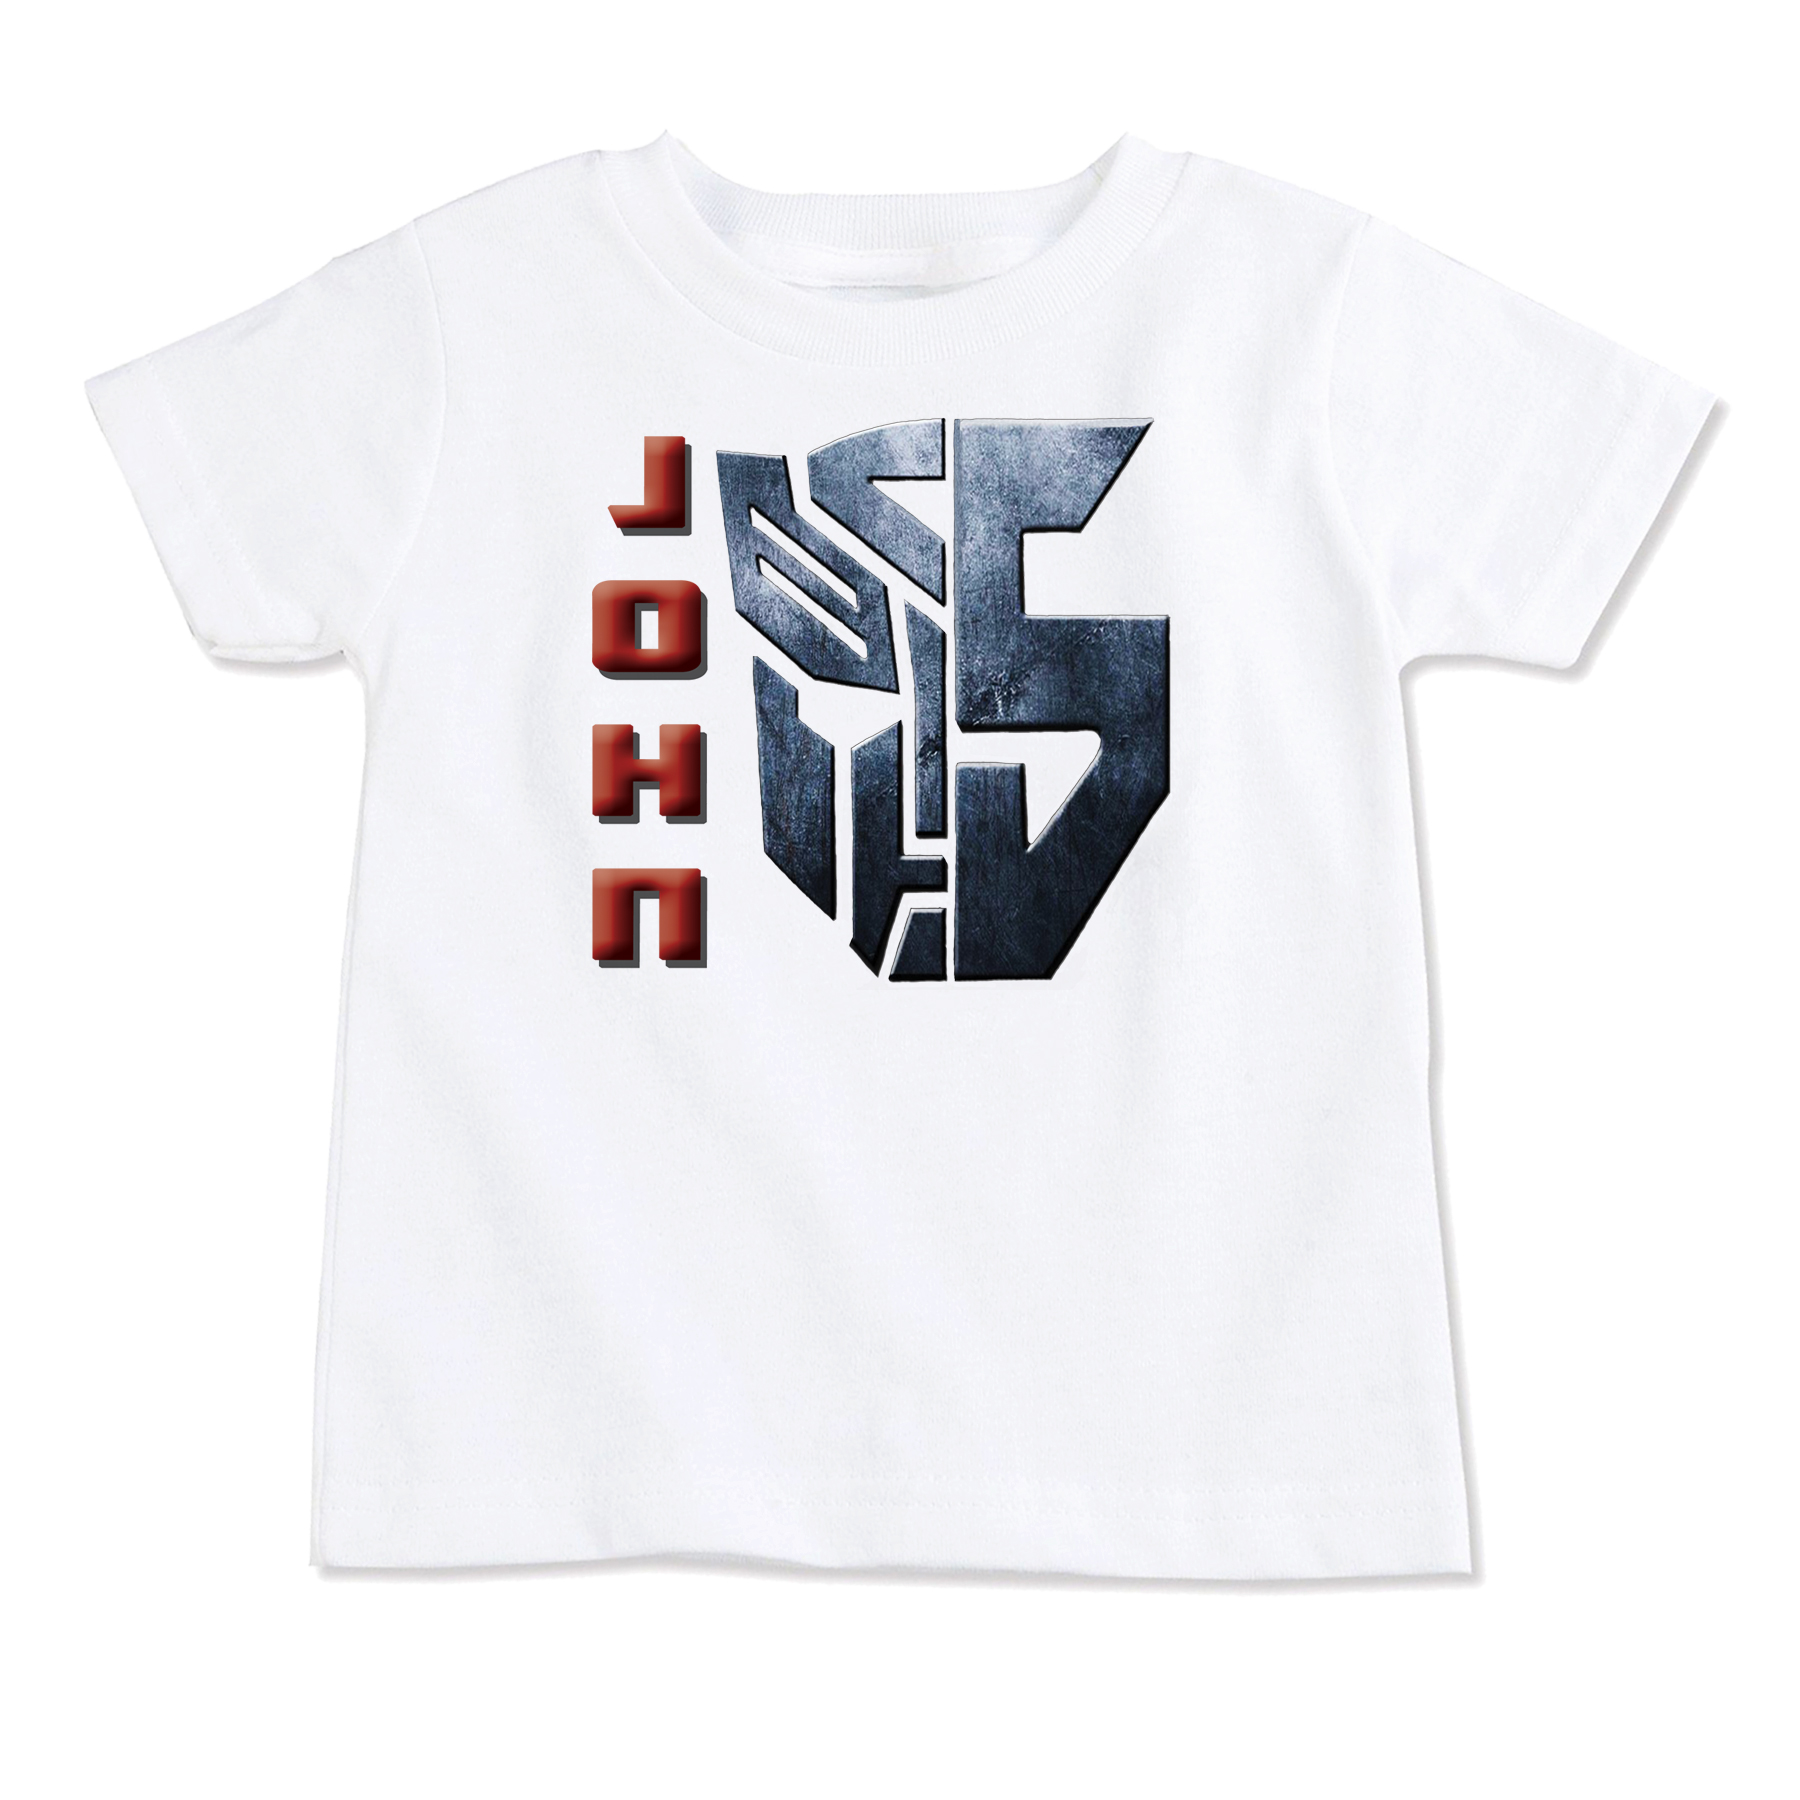 Transformers Superhero T Shirt Top Birthday Toddler